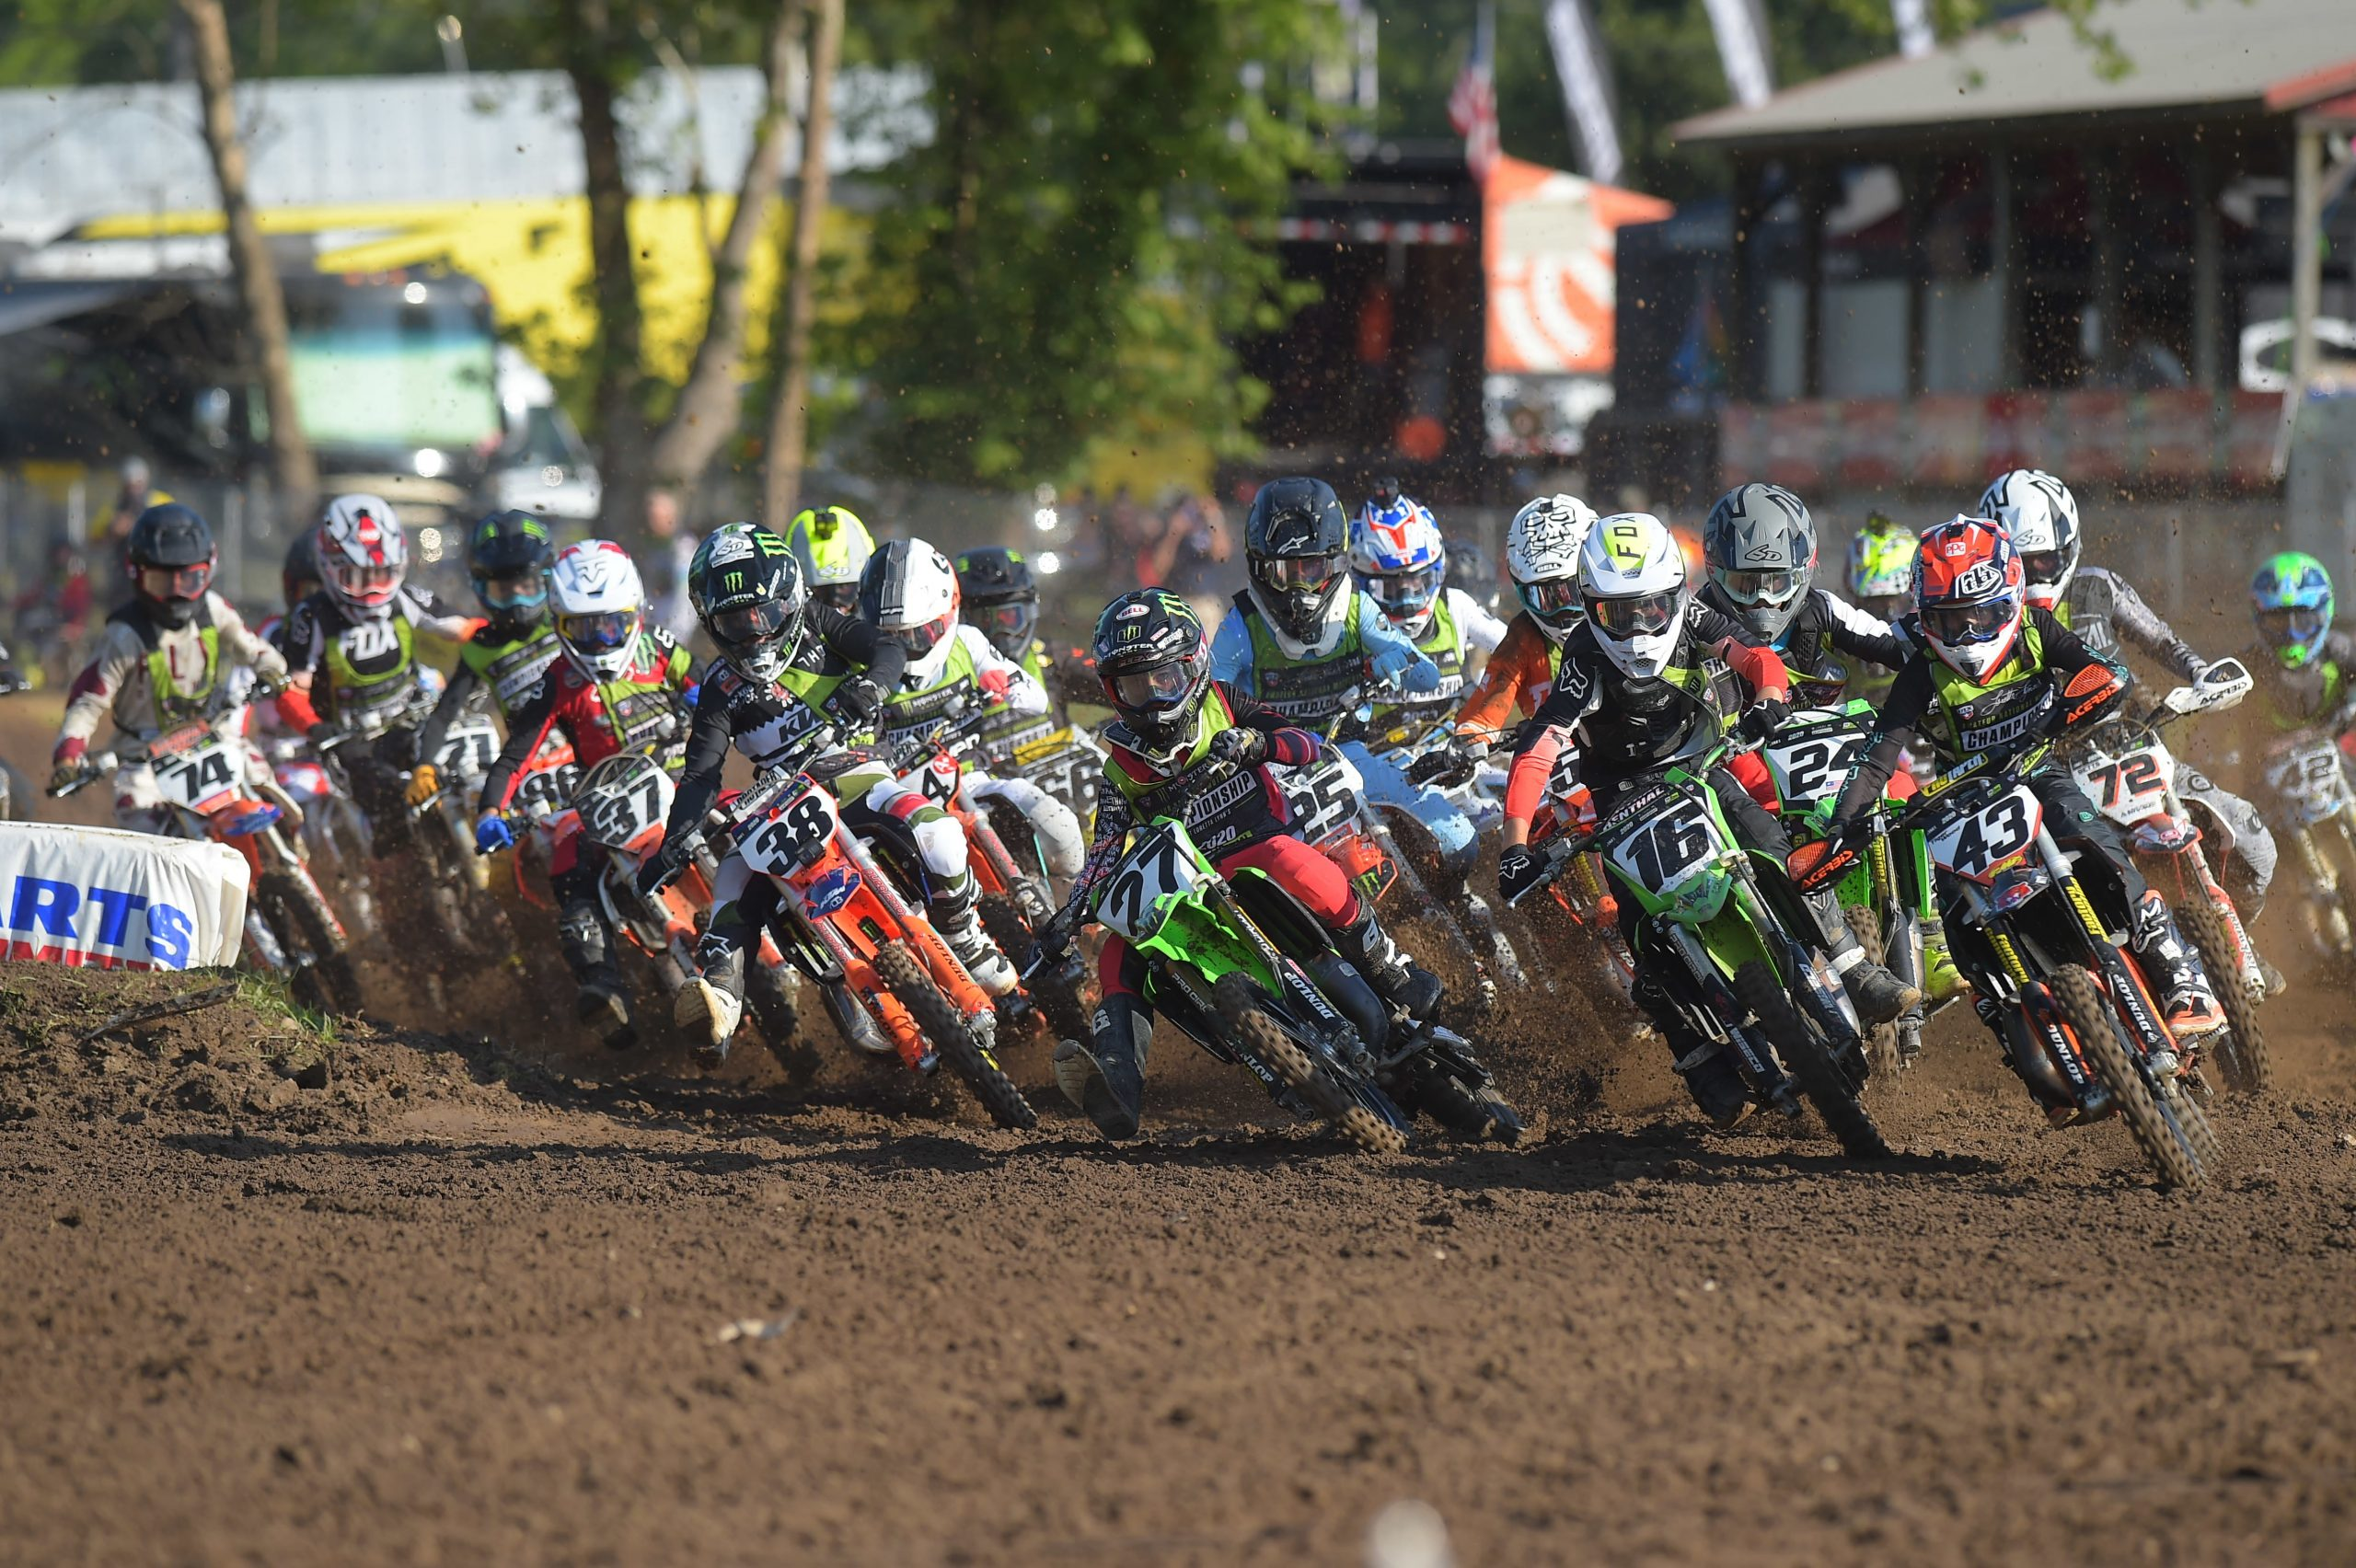 40th annual Monster Energy AMA Amateur National Motocross Championship (1)